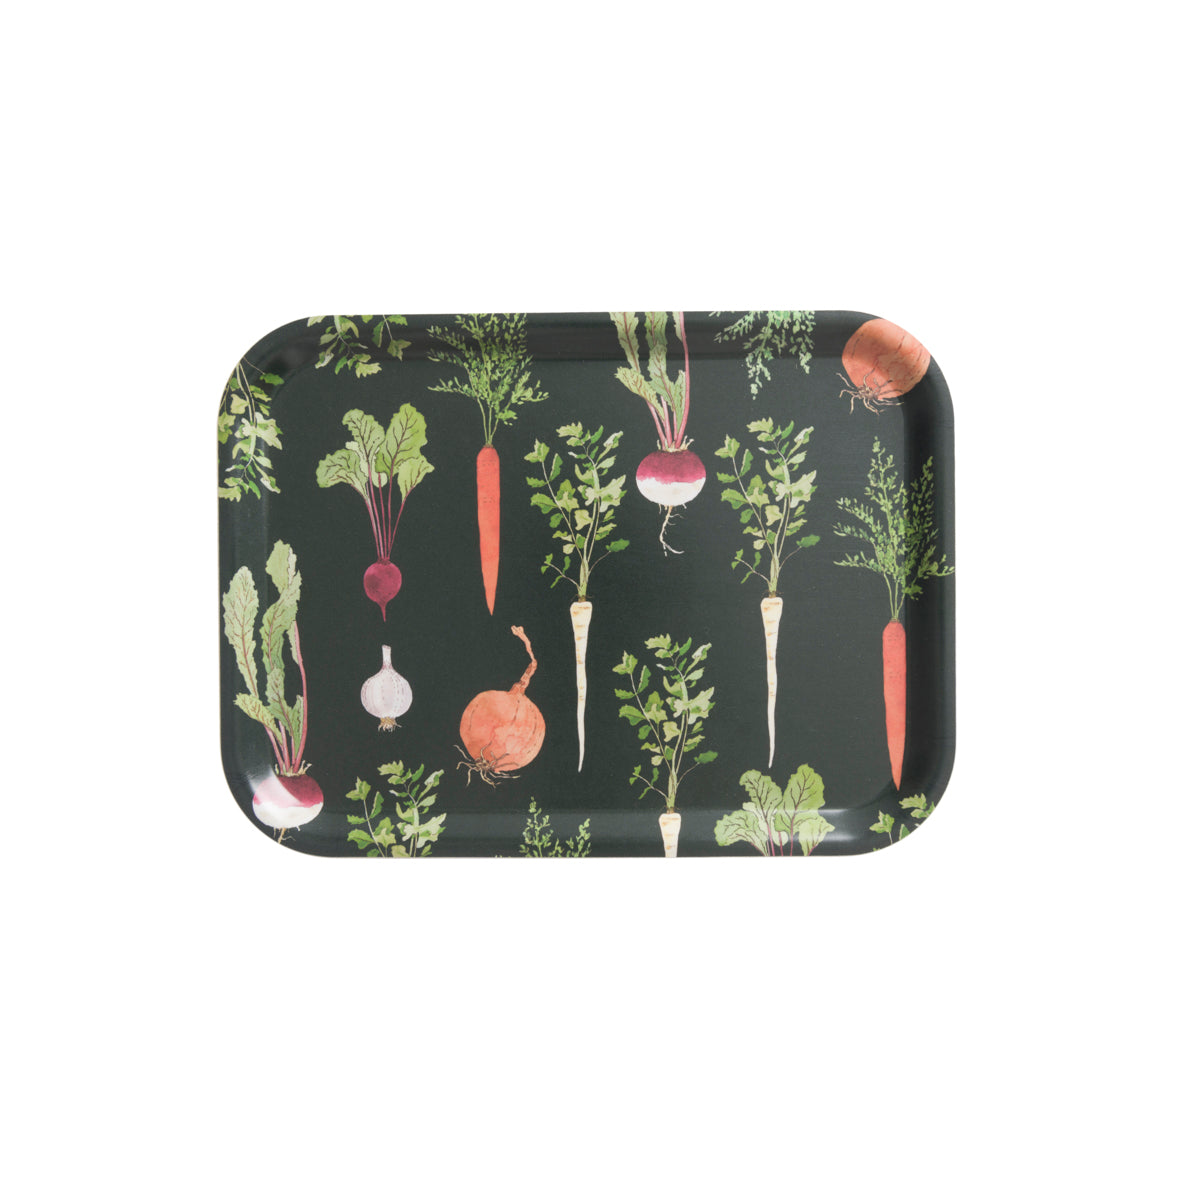 Home Grown Printed Tray Small by Sophie Allport